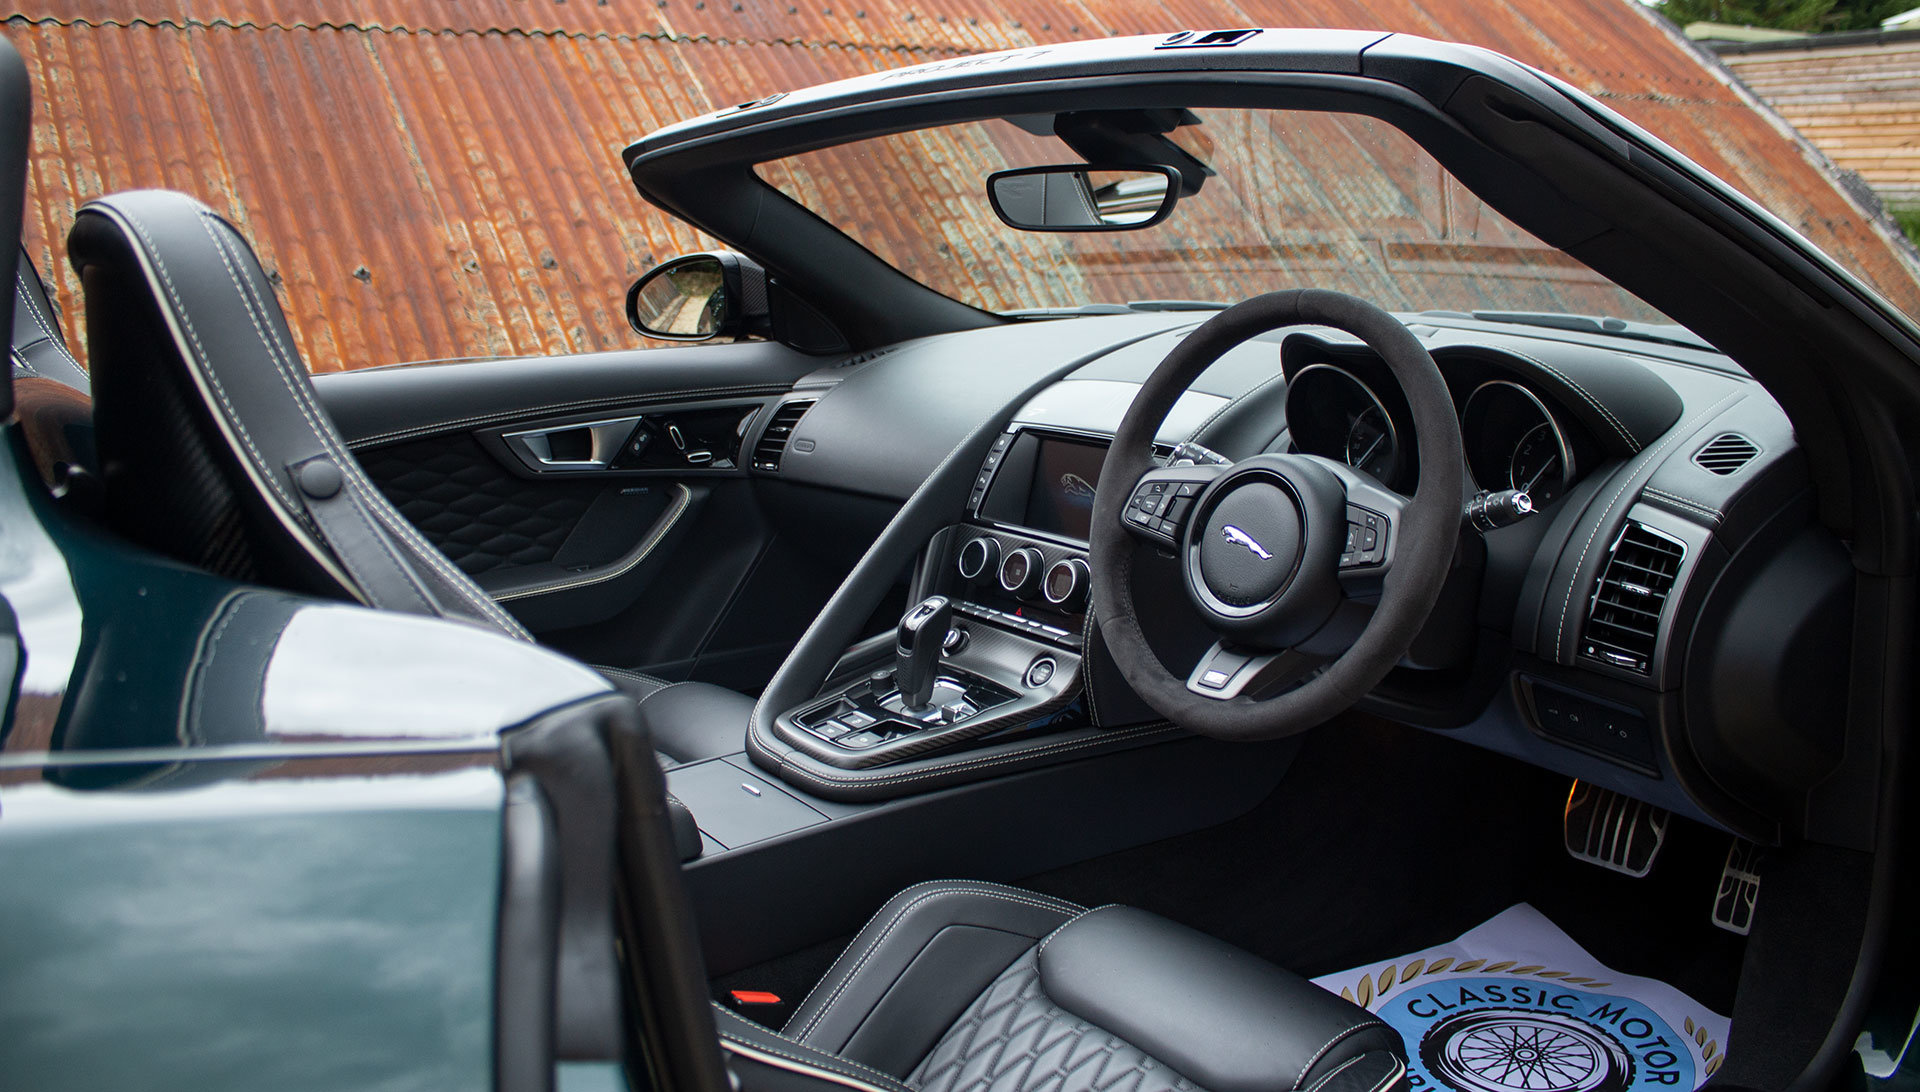 2016 Jaguar Project 7 - 1 of 80 RHD, 1,400 miles SOLD (picture 12 of 24)